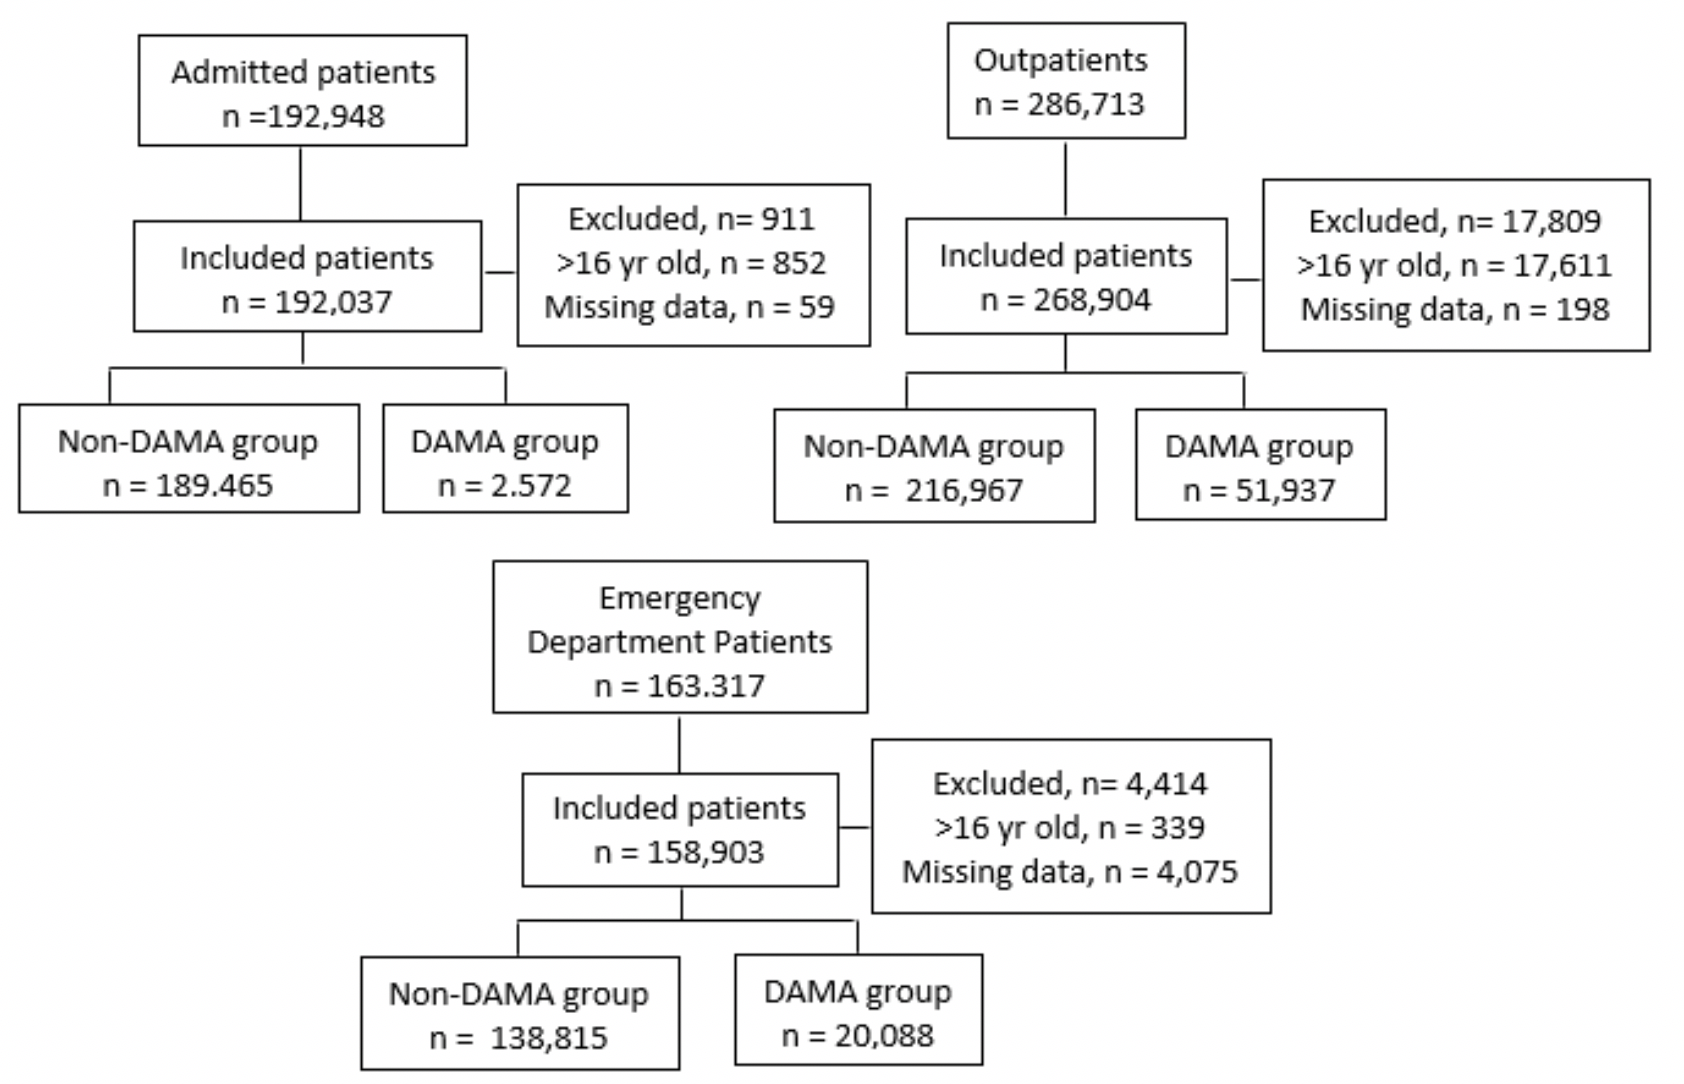 Discharge Against Medical Advice in Culturally and Linguistically Diverse Patients